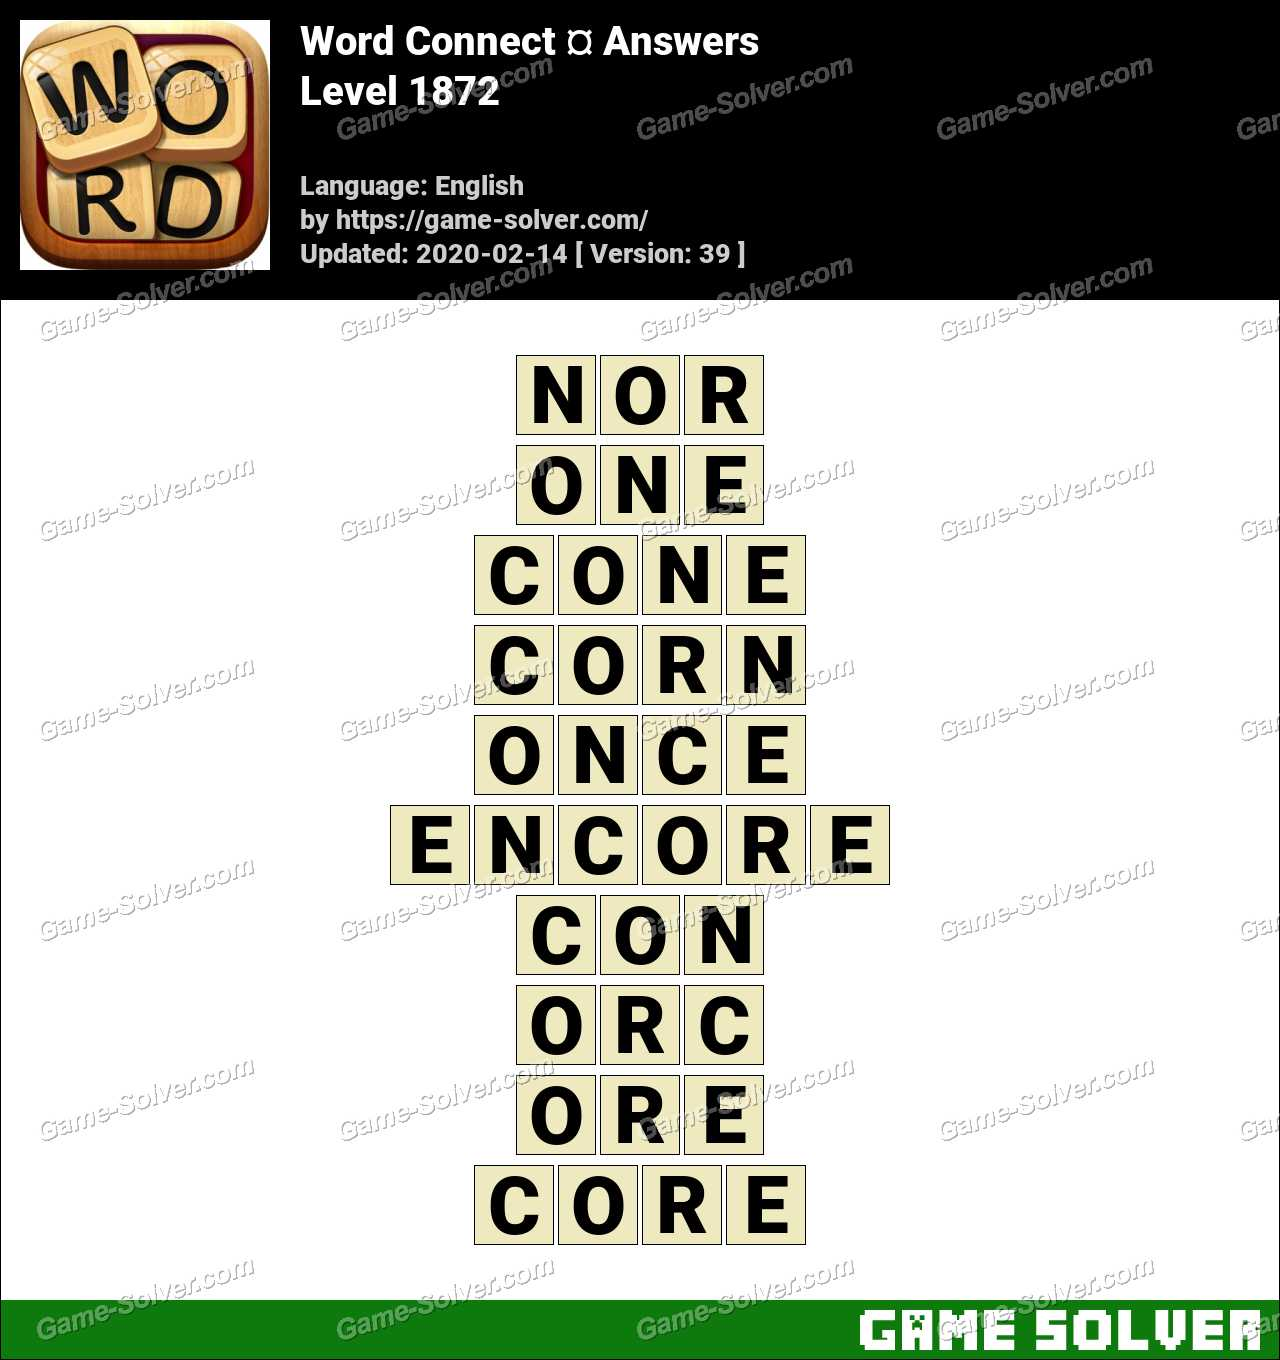 Word Connect Level 1872 Answers